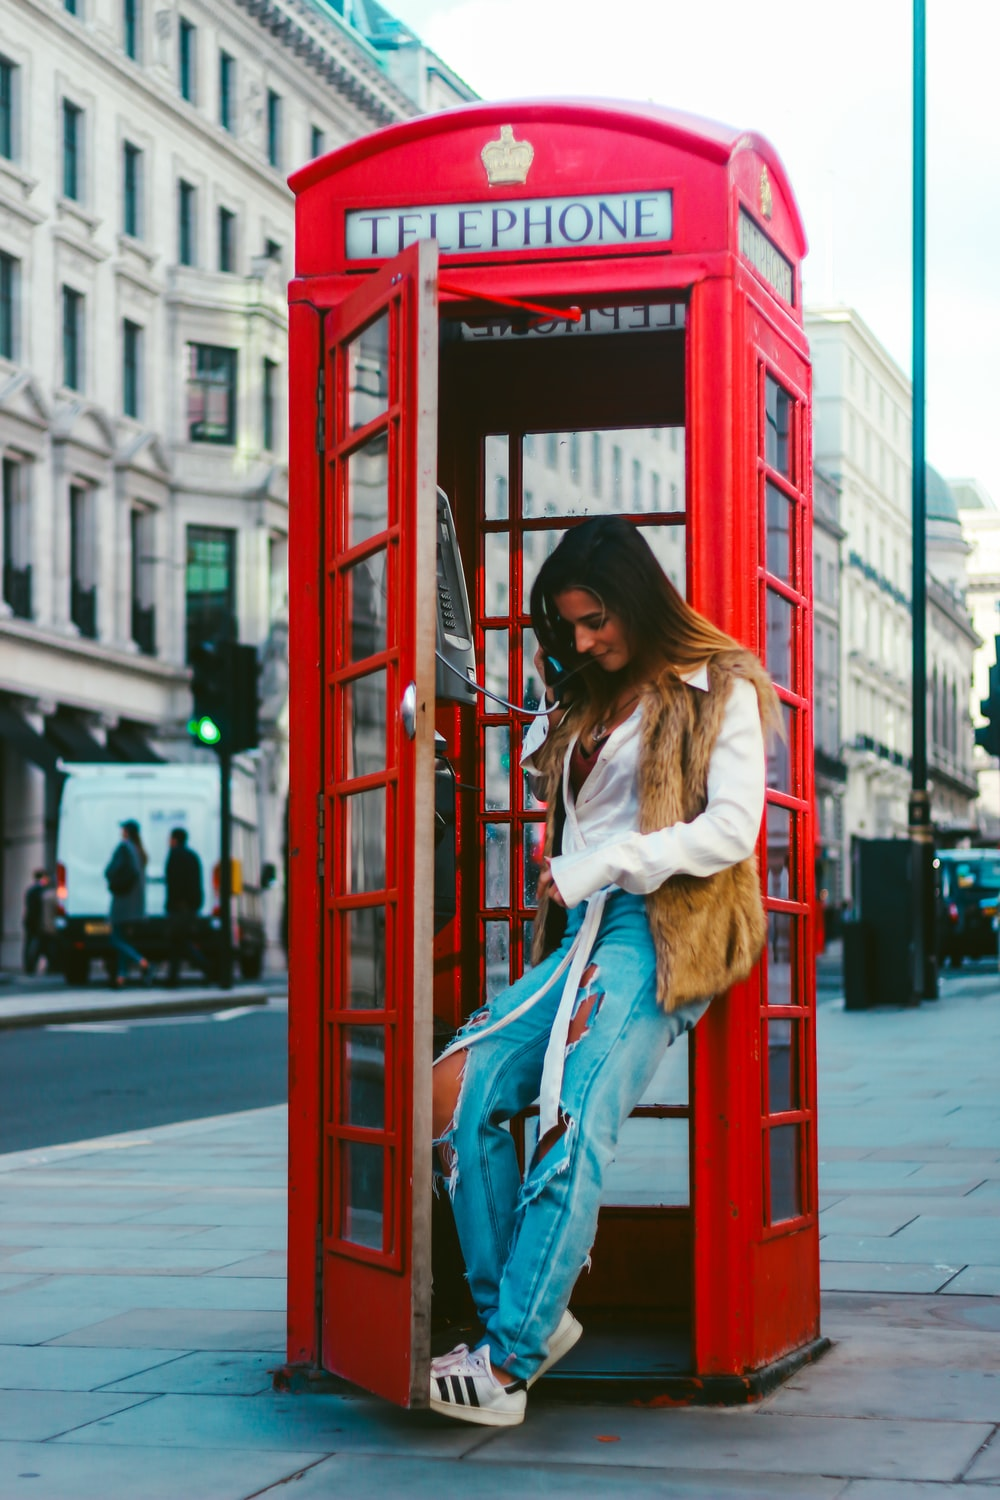 woman in white jacket and blue denim jeans standing on red telephone booth